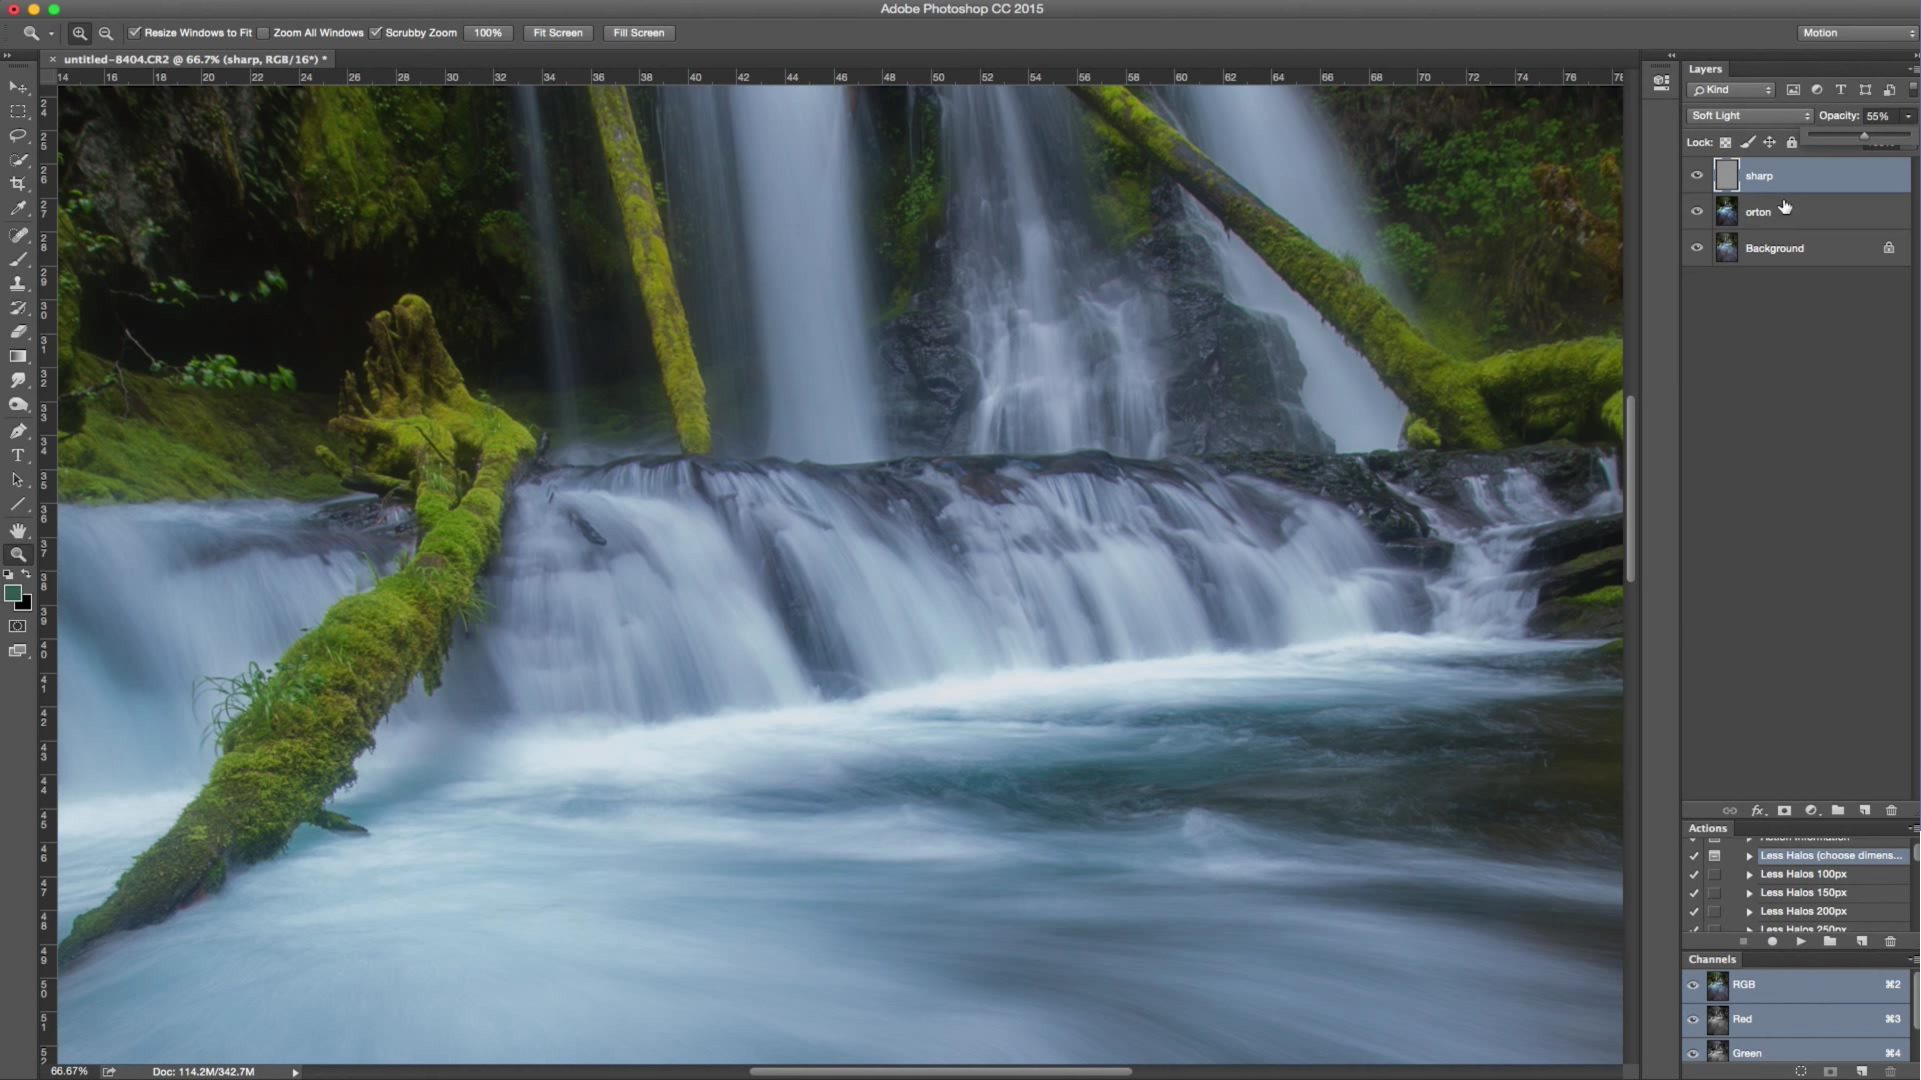 Landscape Photography Photoshop Tutorial, Orton Effect